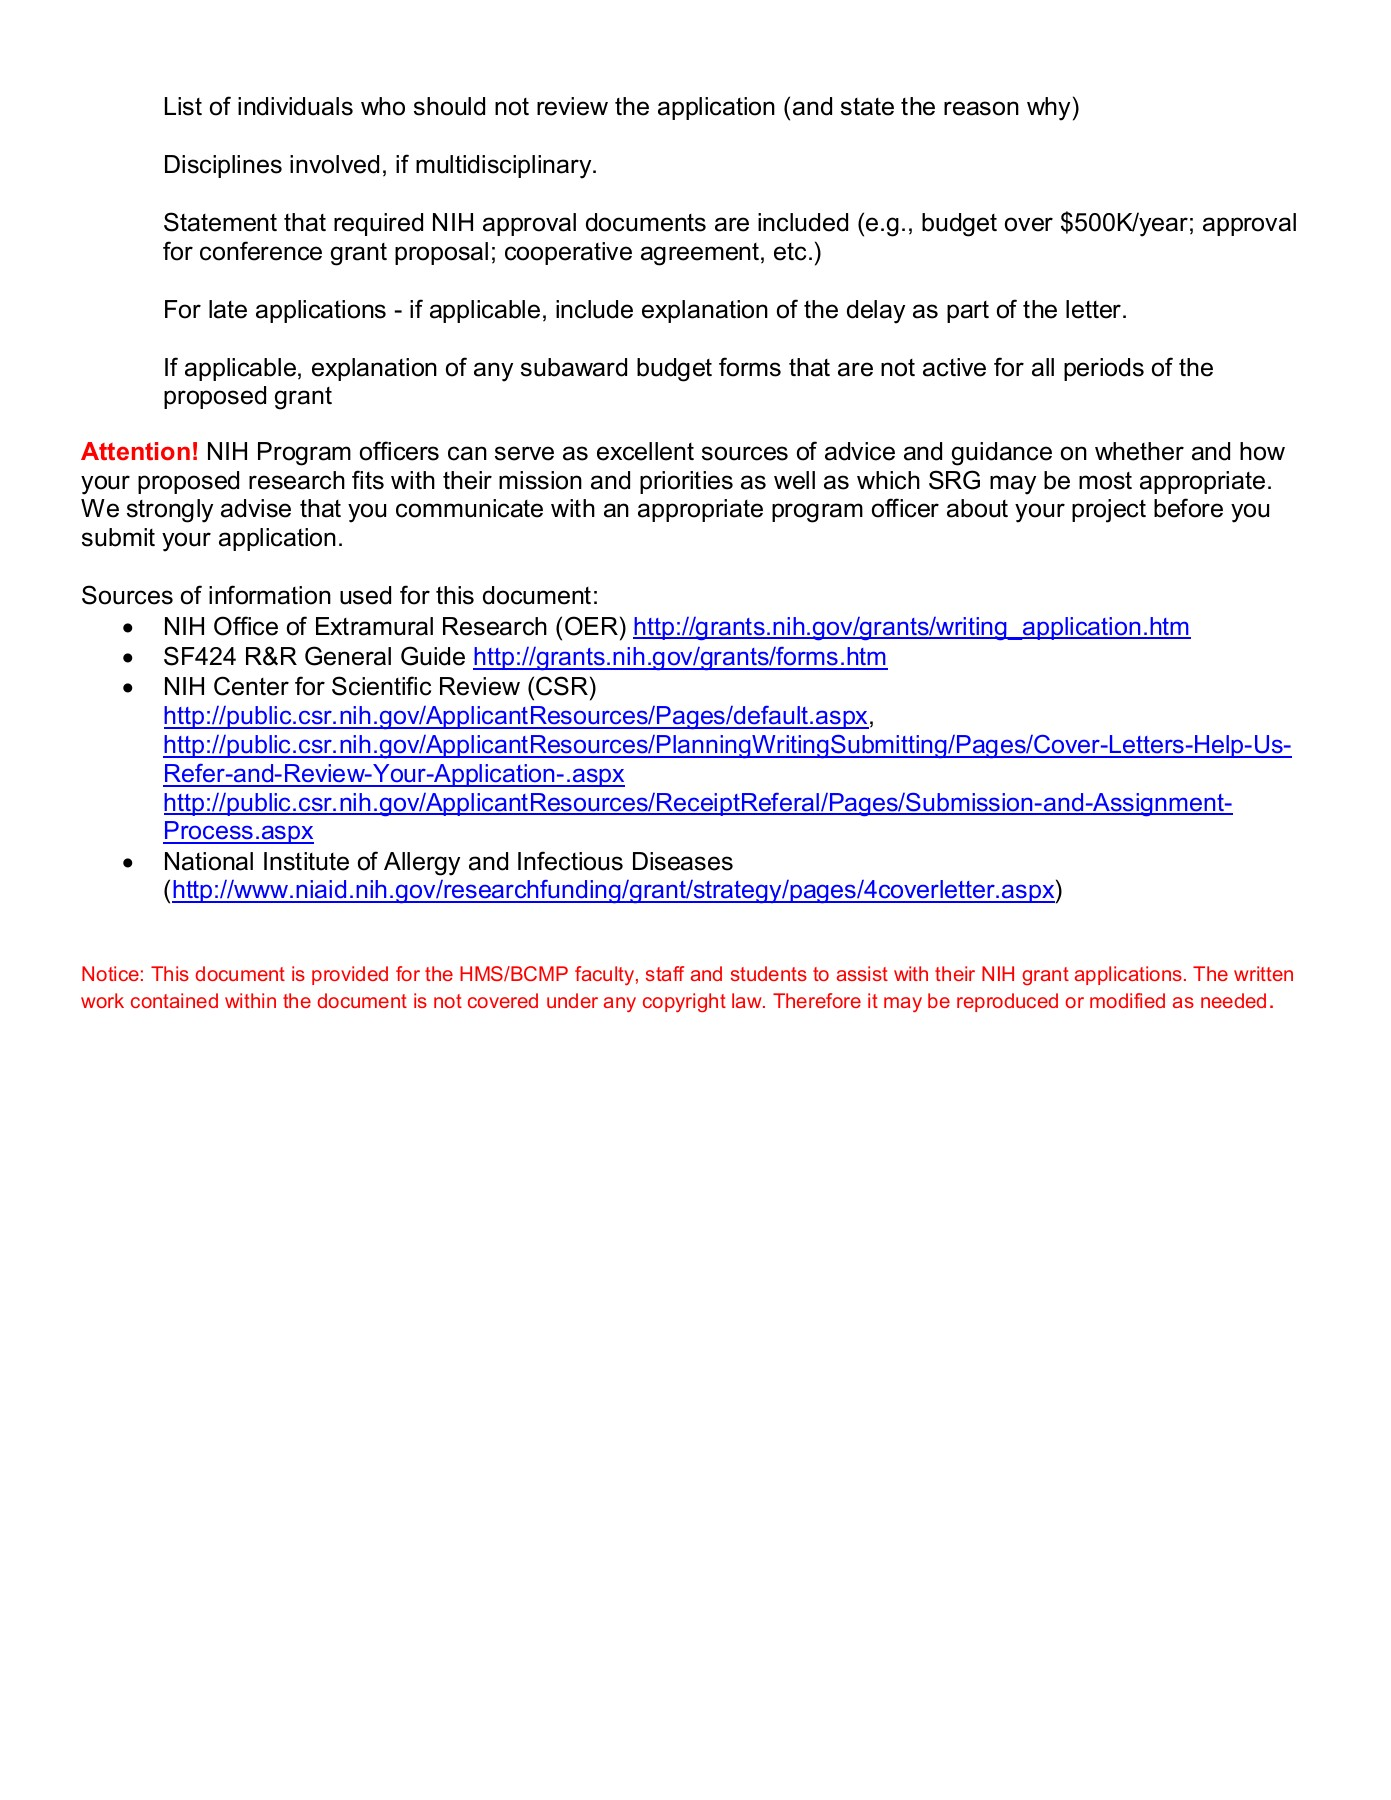 NIH Suggested Cover Letter Format Harvard University Pages